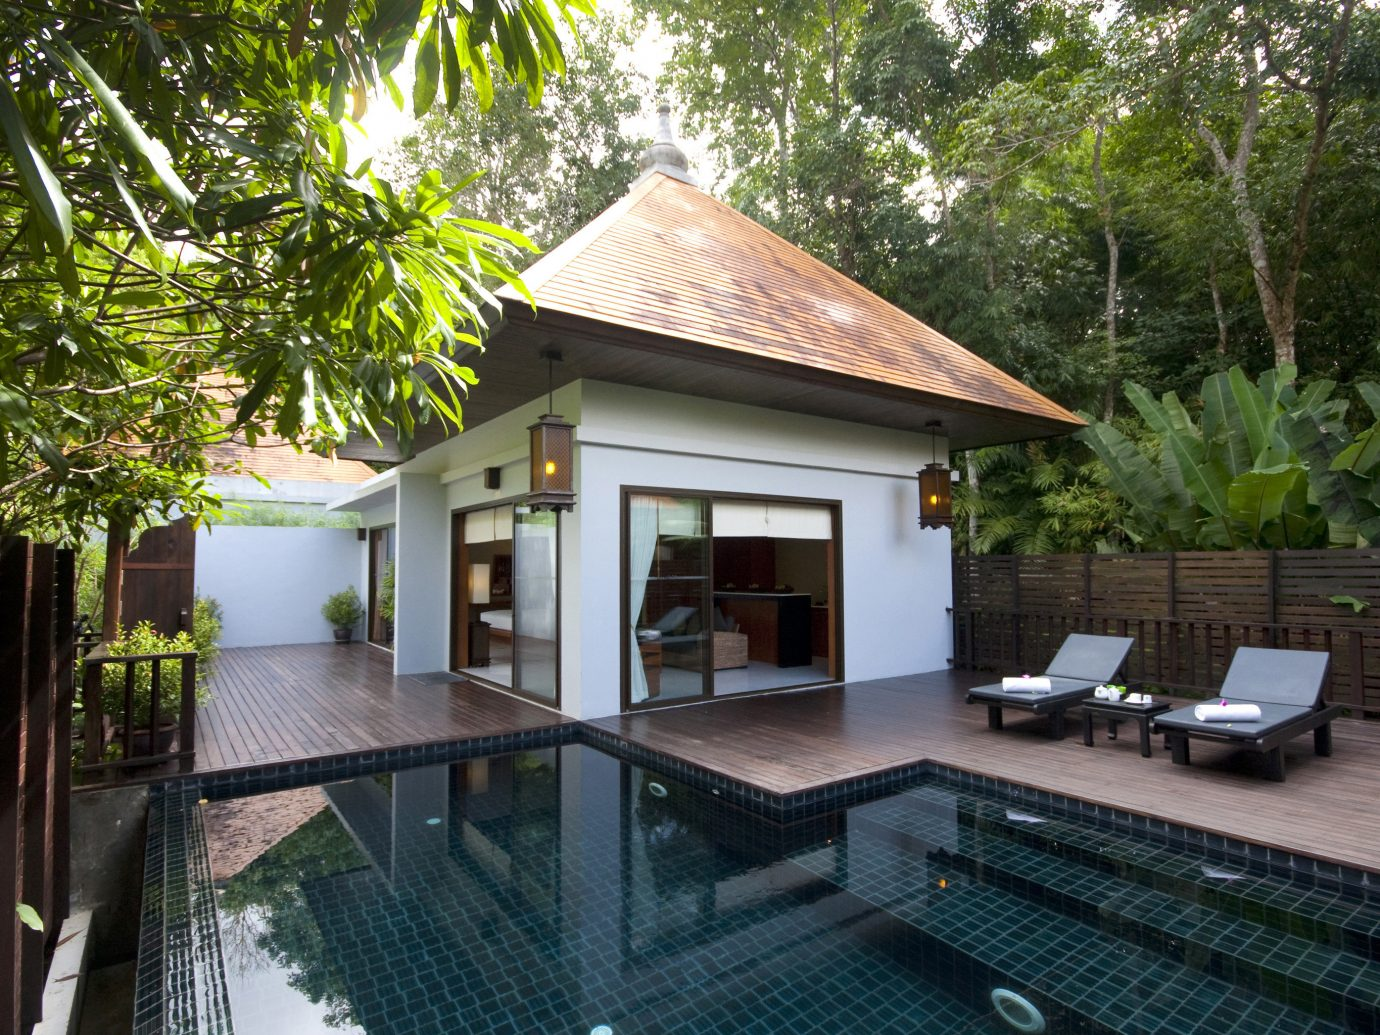 Hotels tree outdoor property building house real estate Villa swimming pool home Resort estate cottage backyard outdoor structure area furniture several